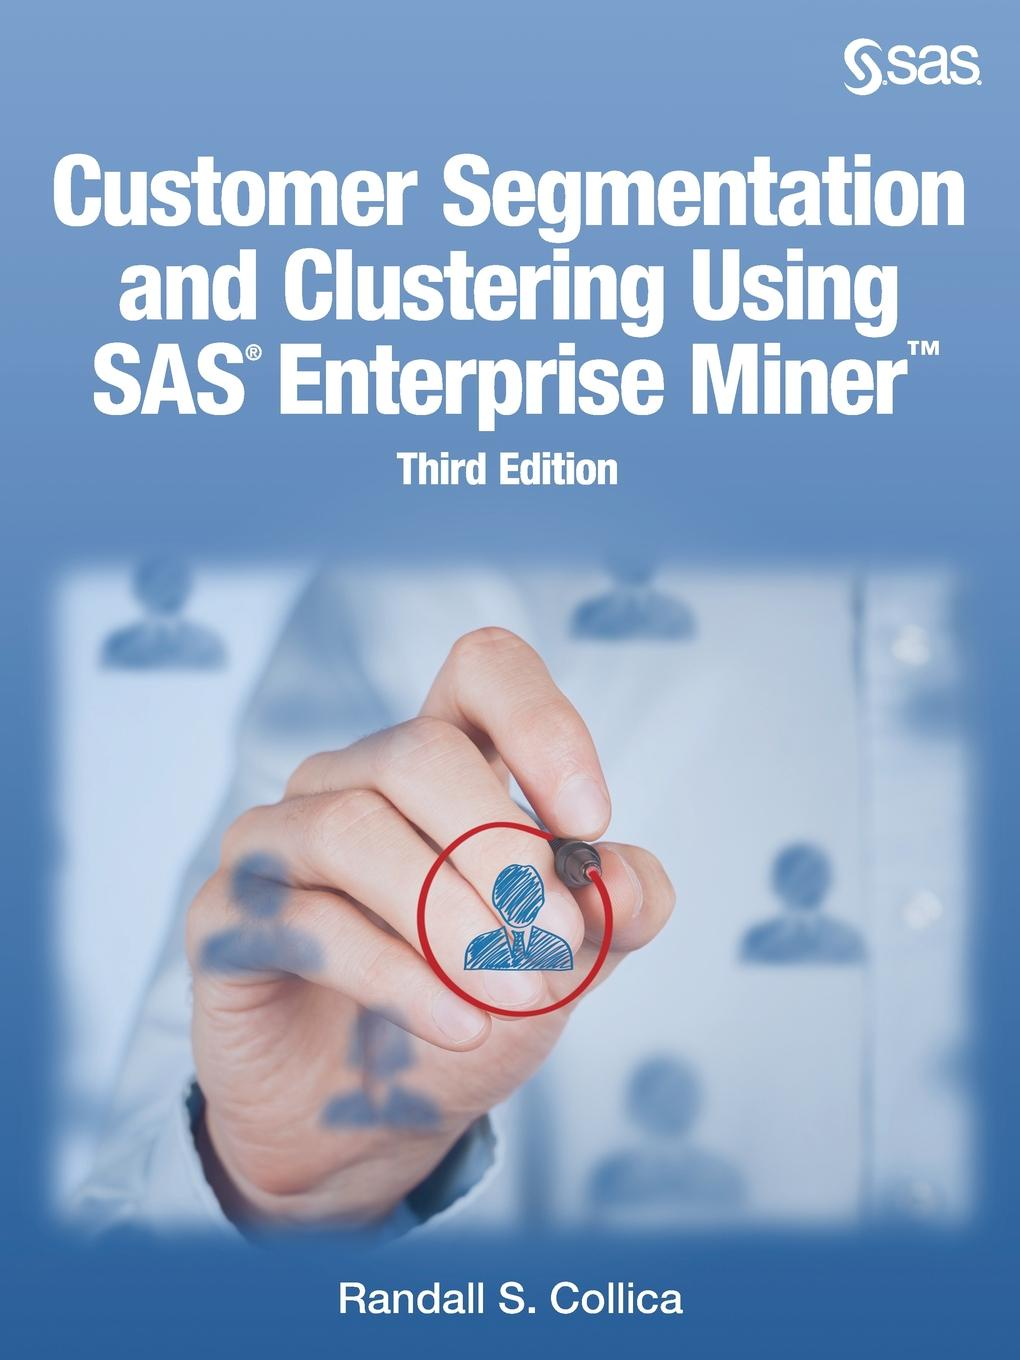 Randall S. Collica Customer Segmentation and Clustering Using SAS Enterprise Miner, Third Edition hybrid models for high dimensional clustering and pattern discovery